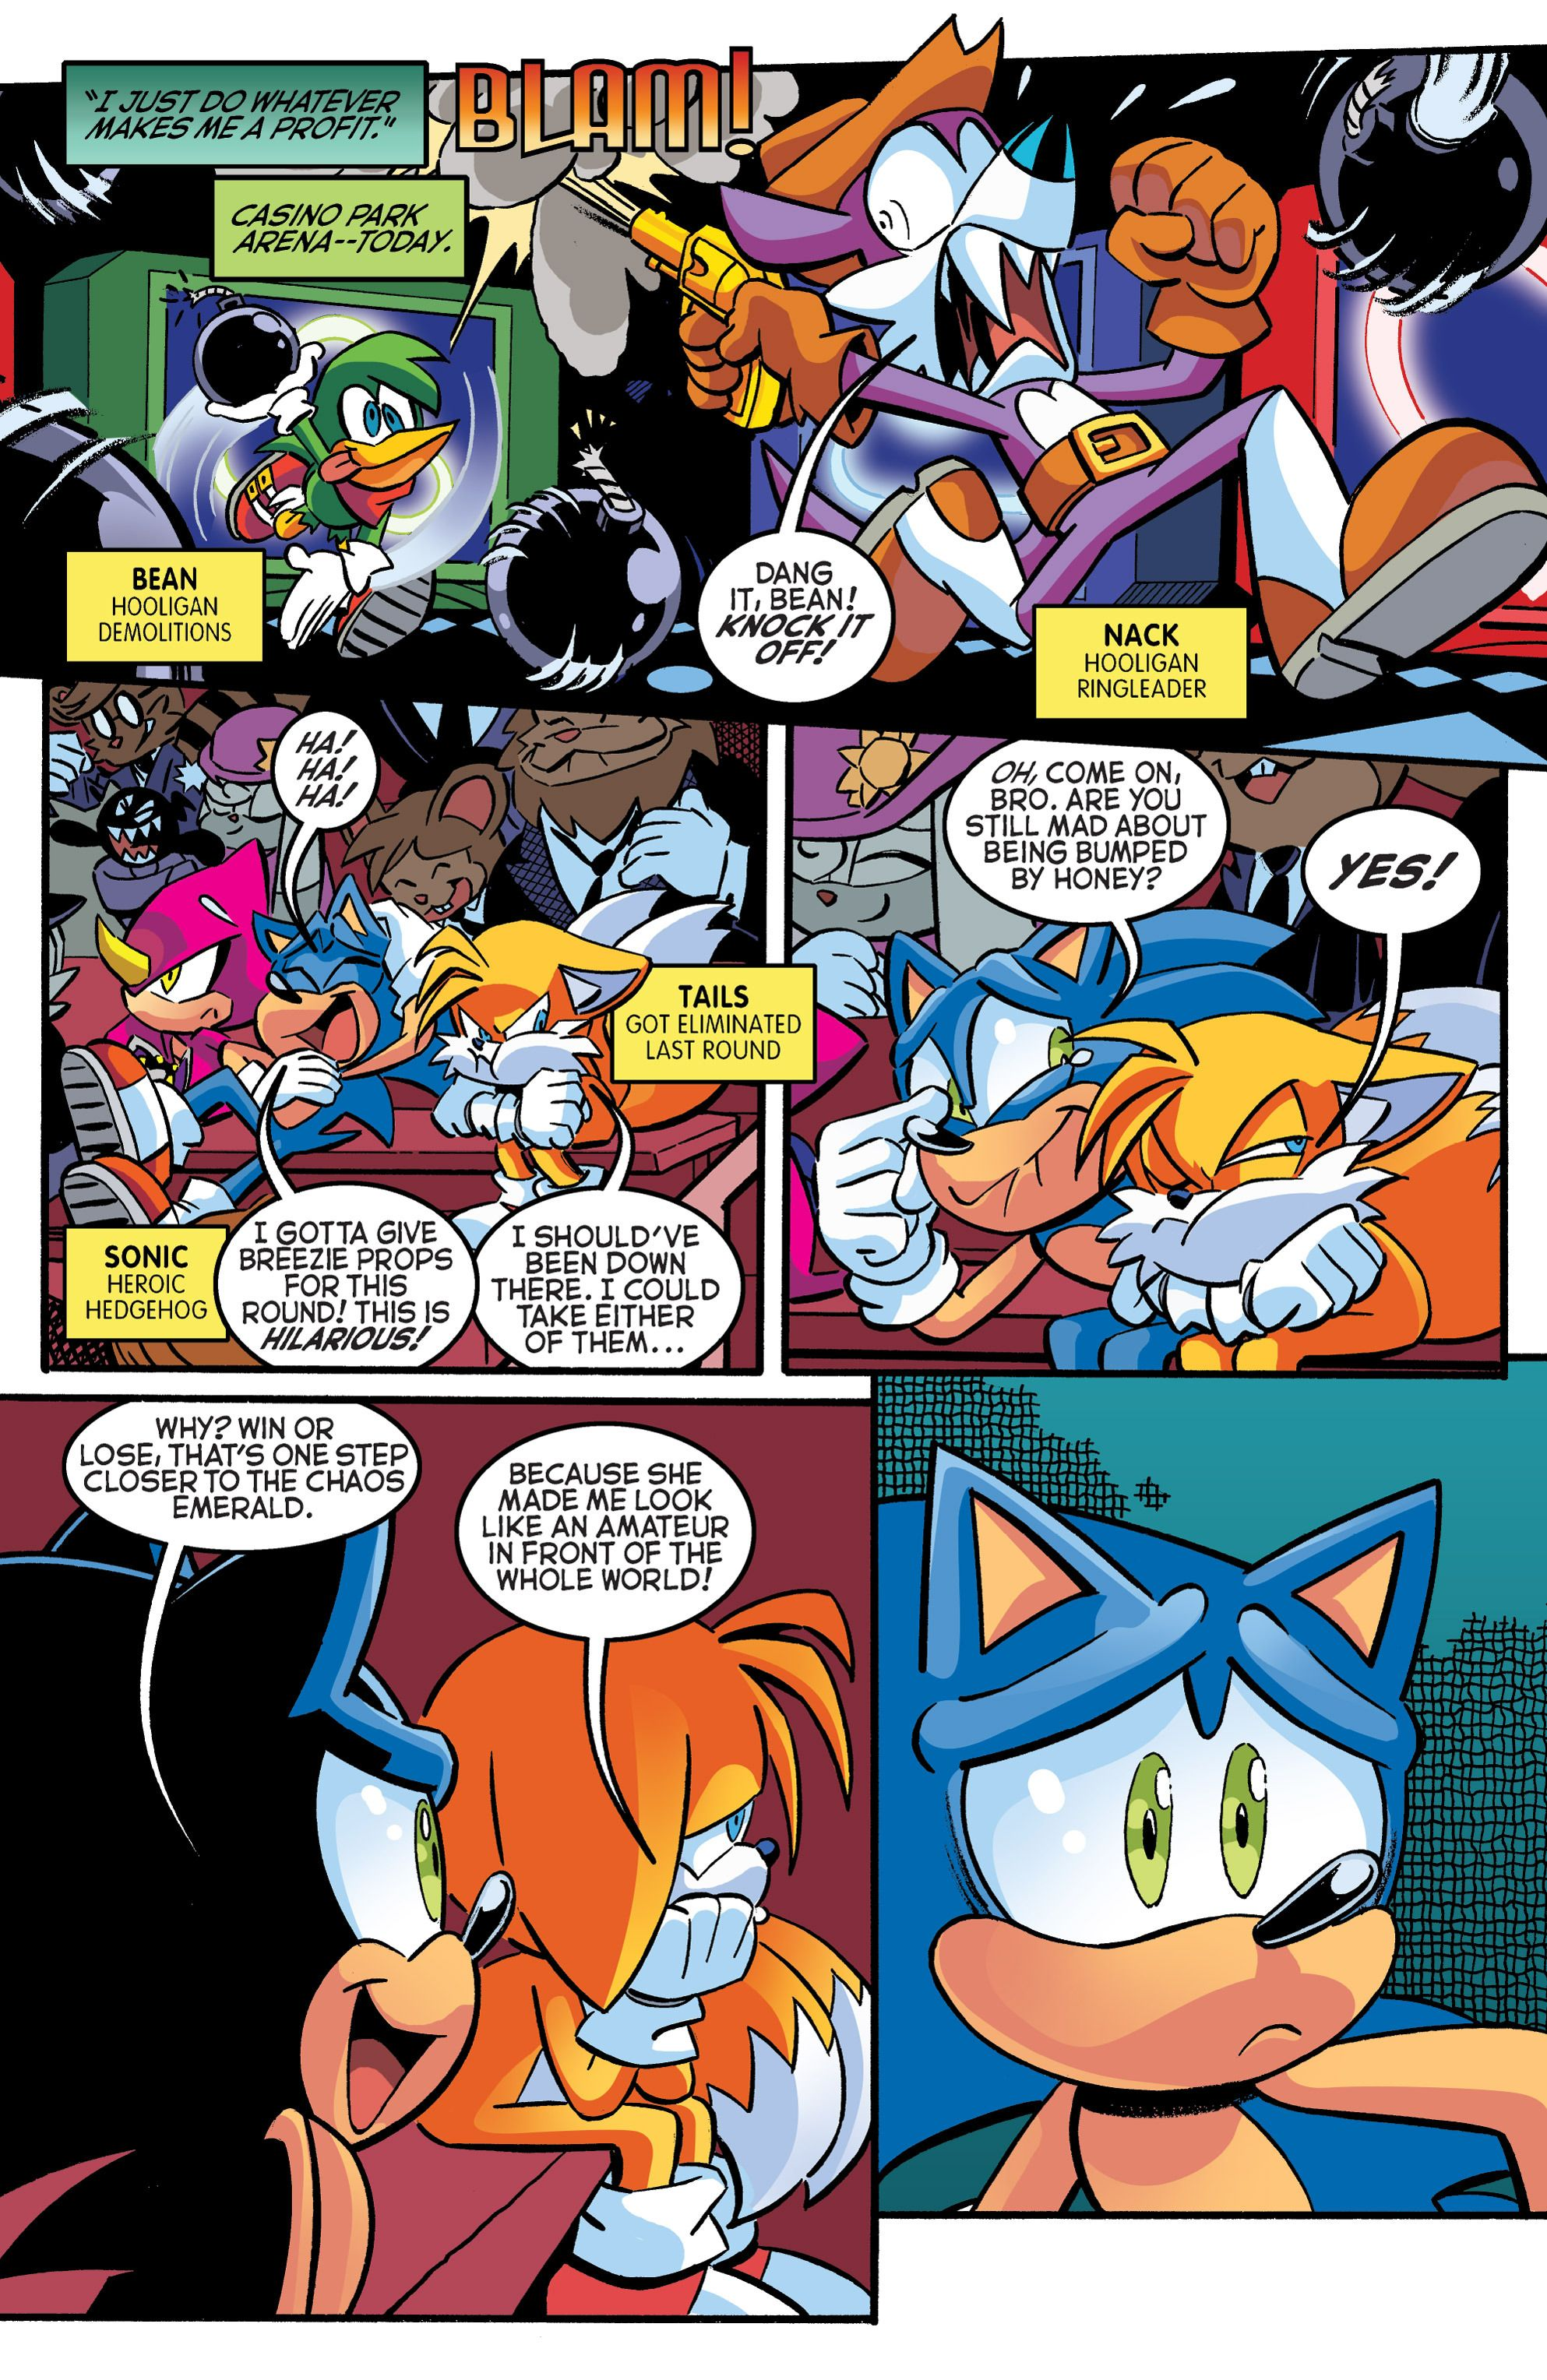 sonic the hedgehog issue 270 read sonic the hedgehog issue 270